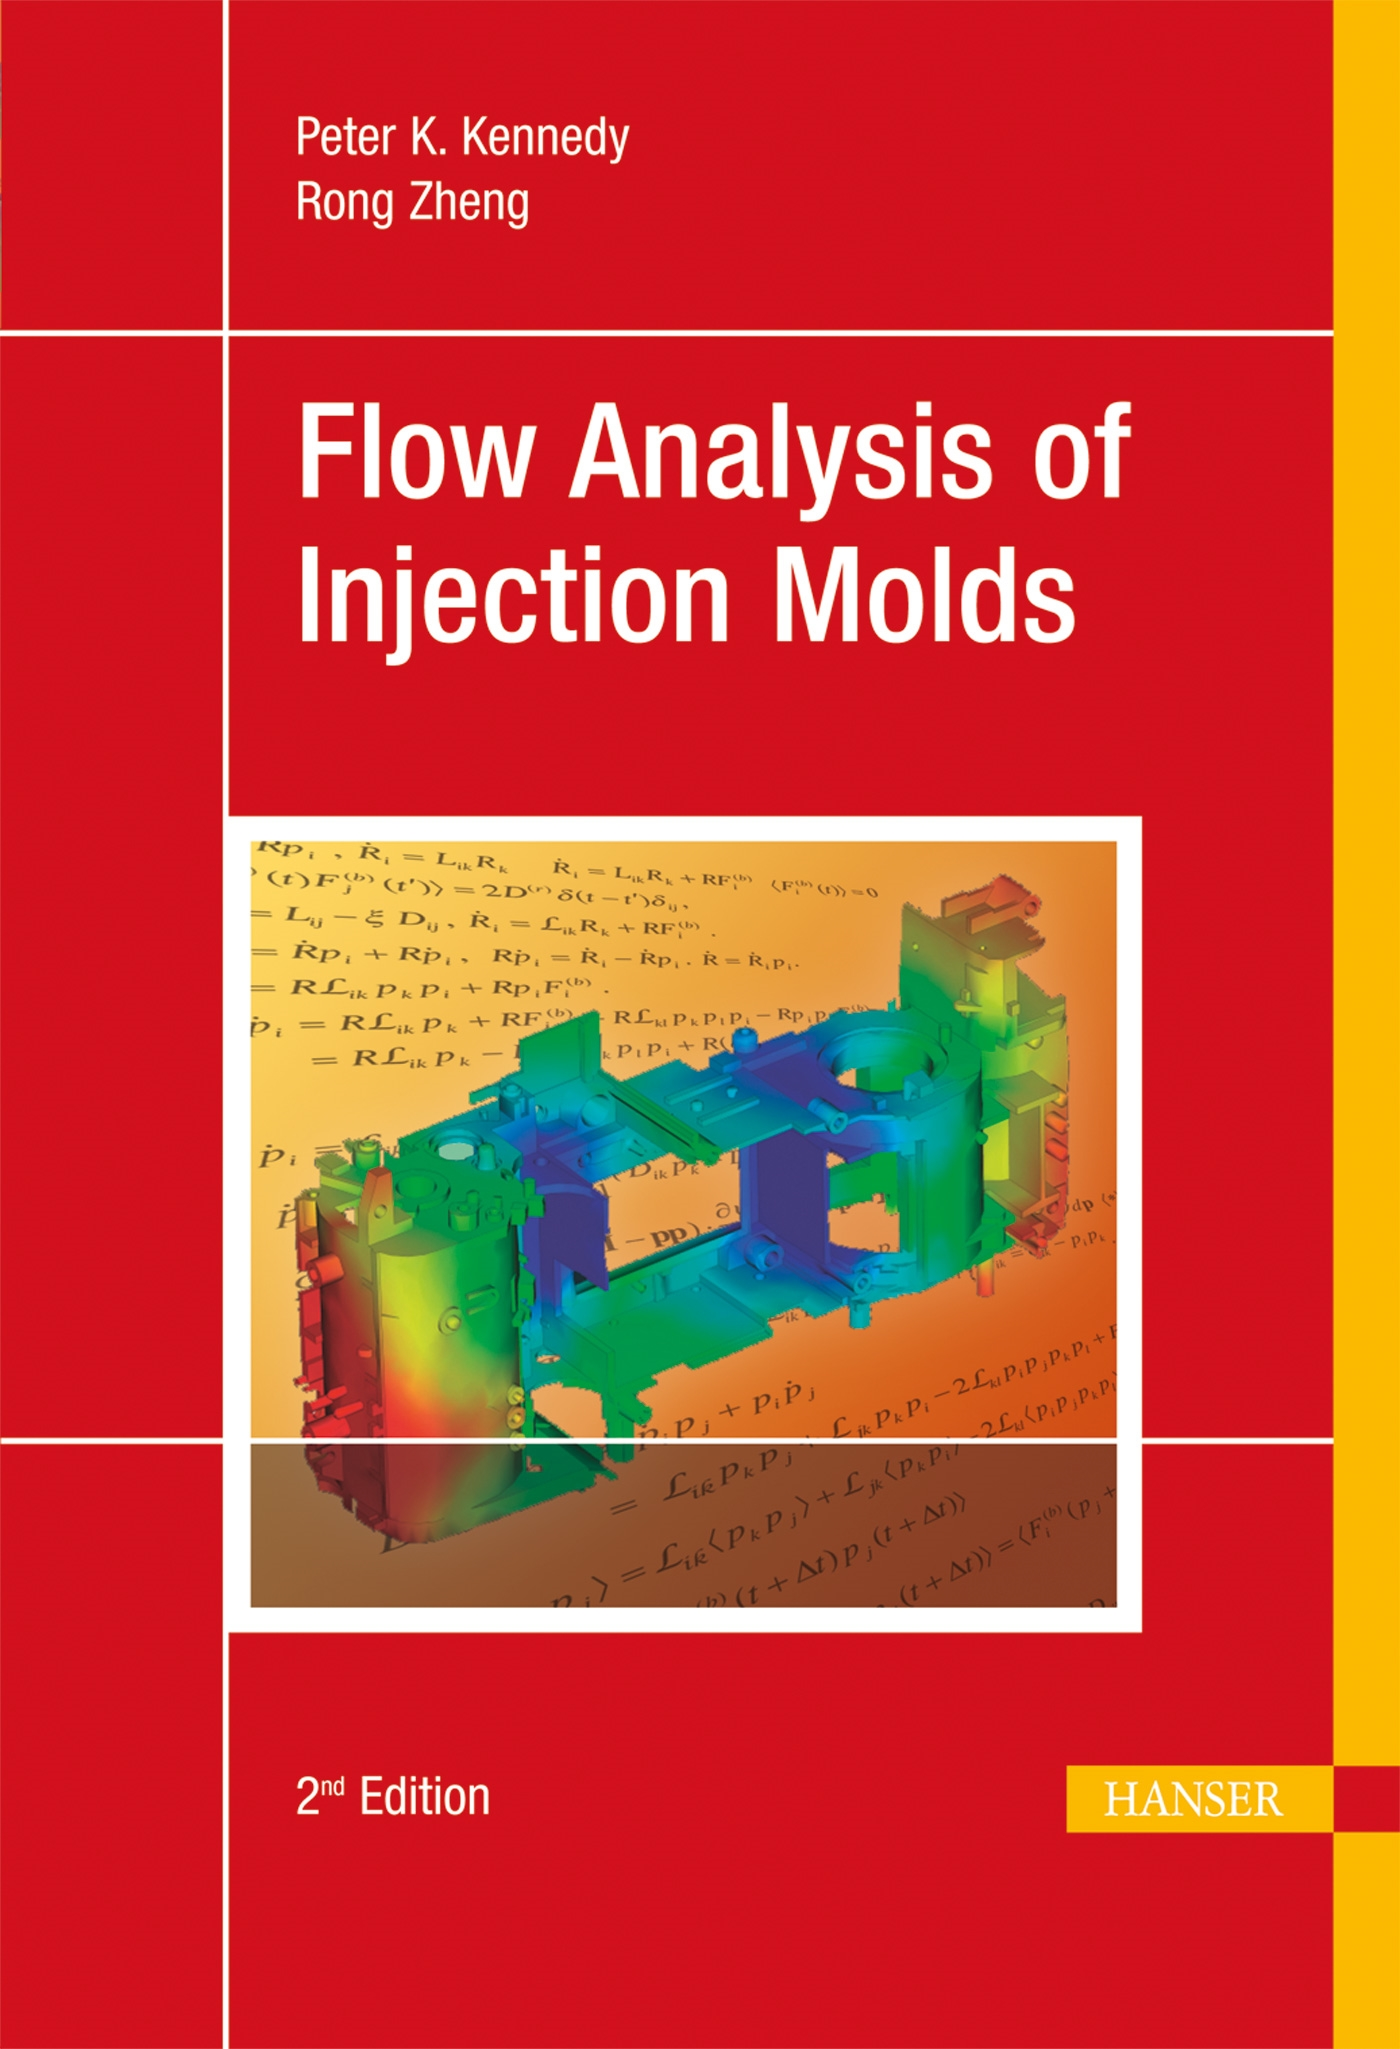 When should manufacturers use mold flow analysis?